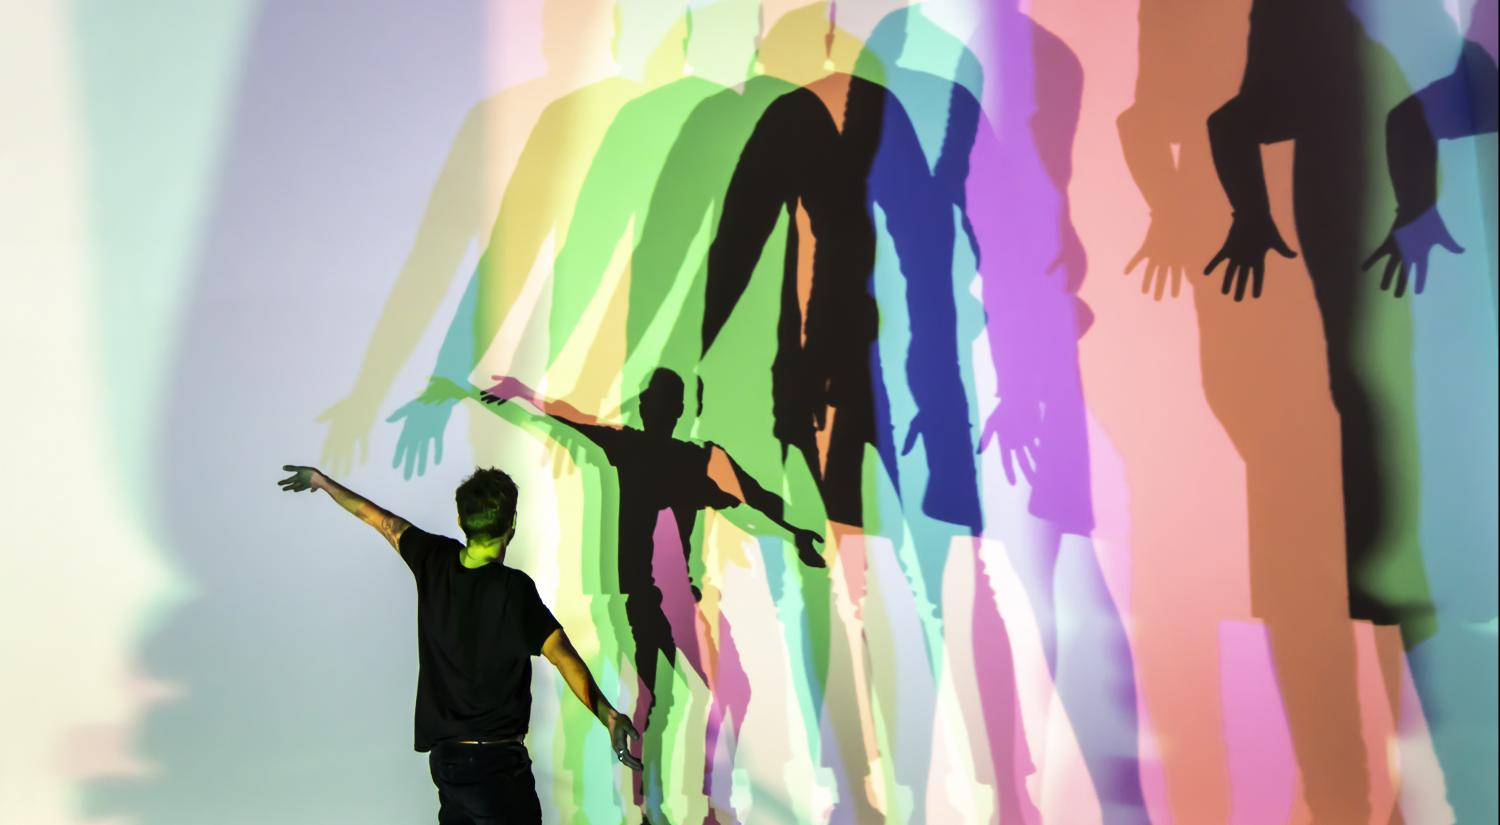 Olafur Eliasson Tate Your uncertain shadow